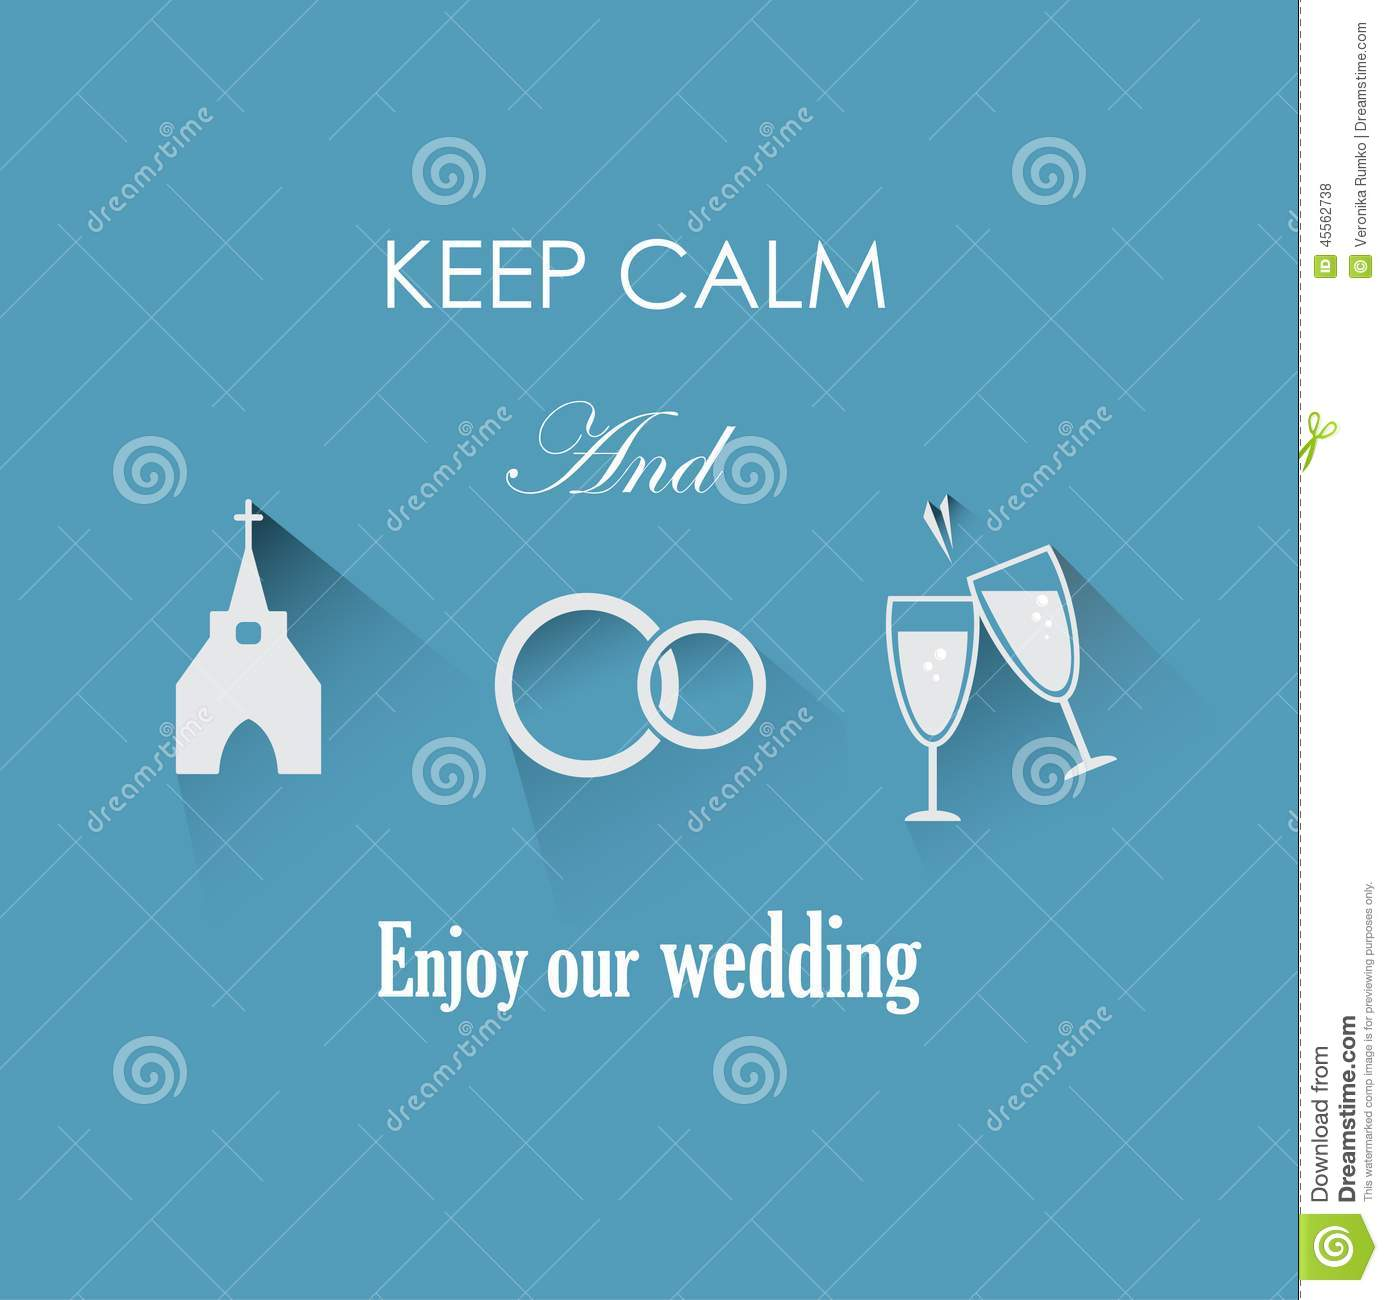 Wedding Rings Clip Art Free Download Keep Calm And Enjoy Ou...